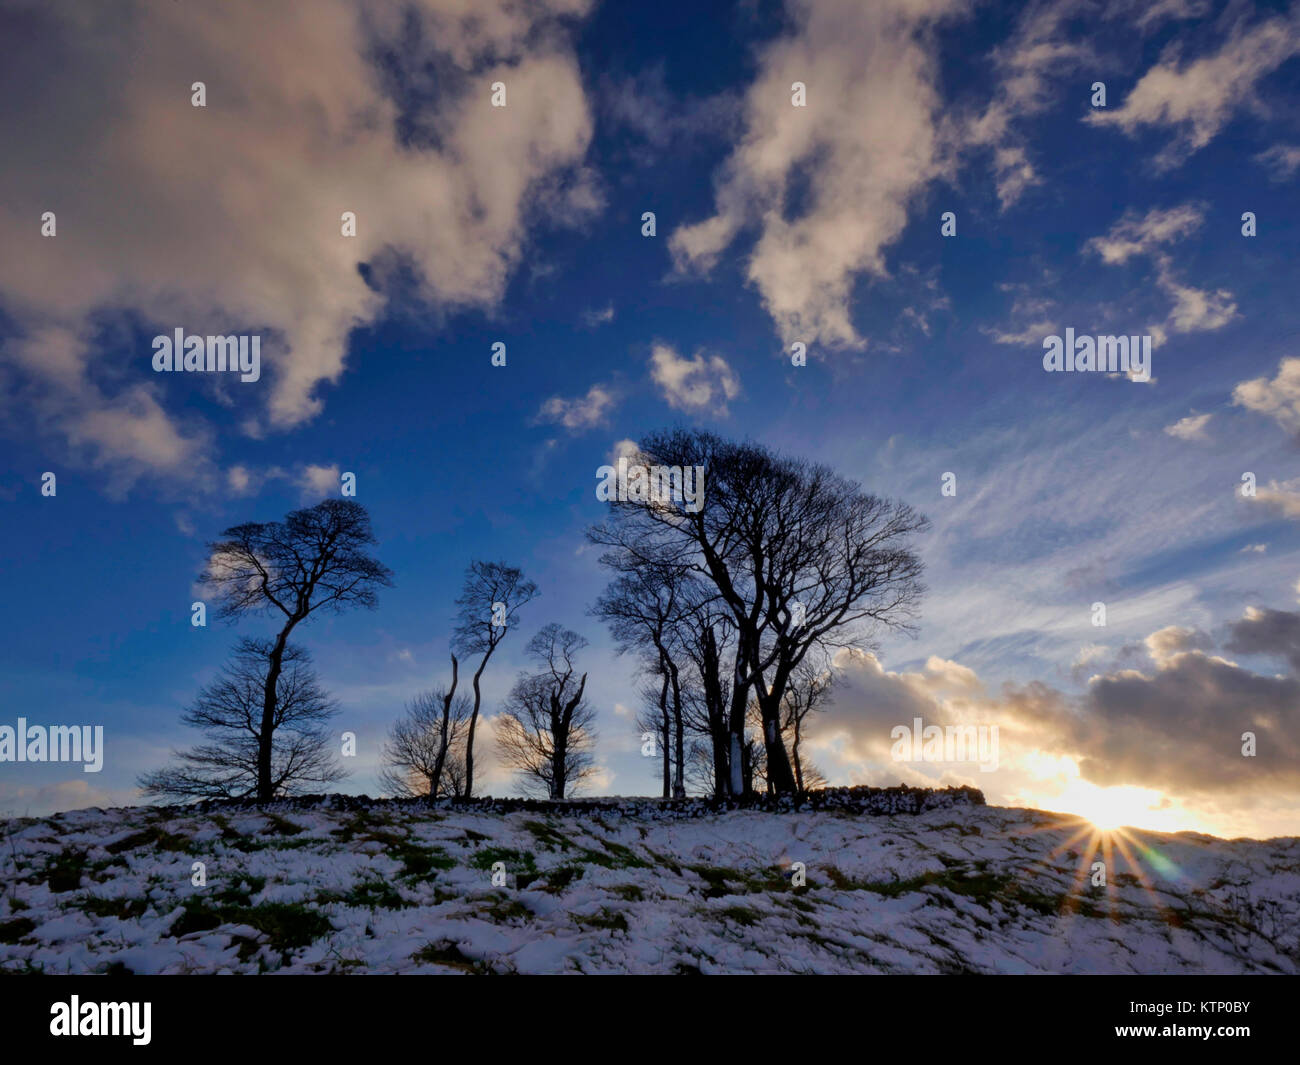 Moat Low, Derbyshire. 28th Dec, 2017. UK Weather: Moat Low Derbyshire spectacular sunset over the snow capped BronzeStock Photo